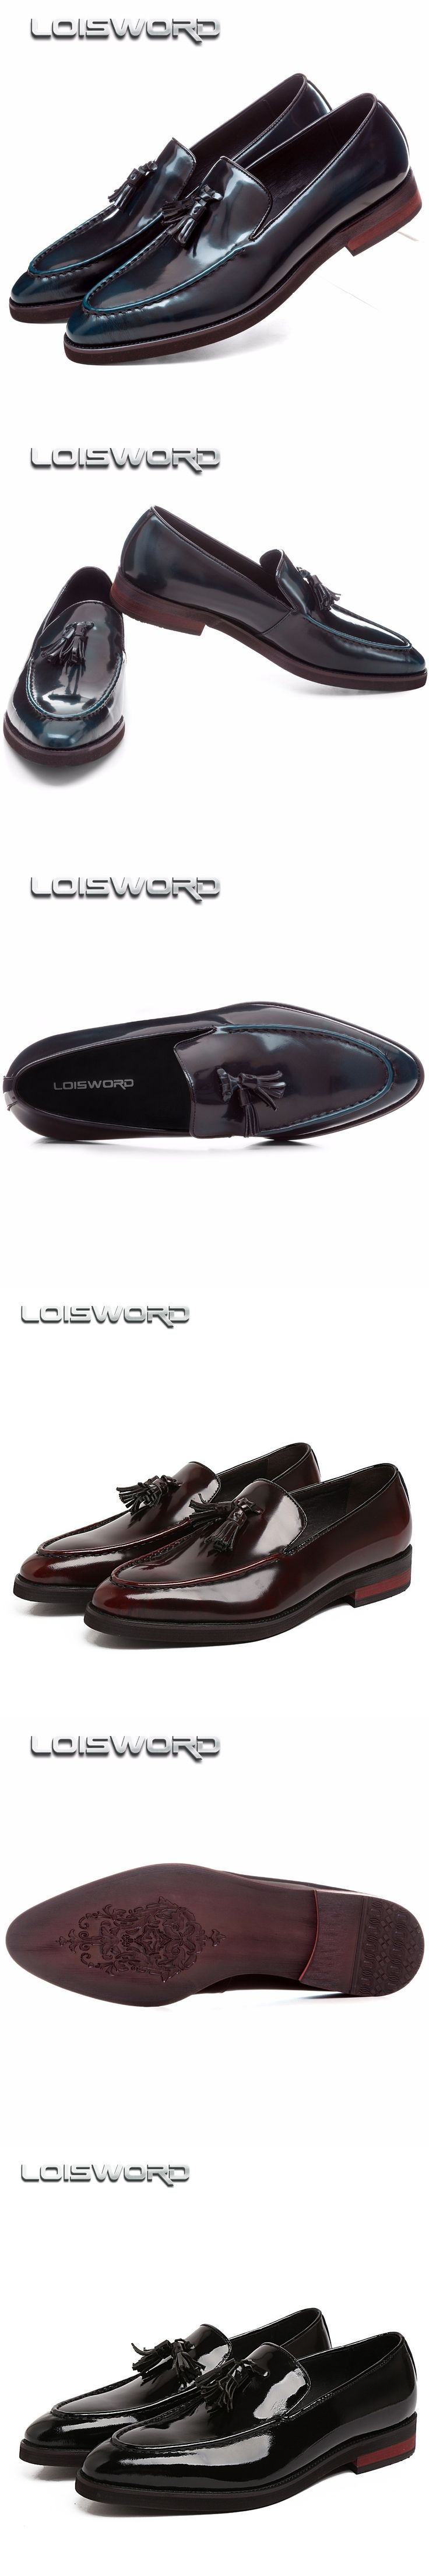 Father's Shoes Black / wine red / blue loafers mens dress shoes genuine leather business shoes mens wedding shoes with tassel